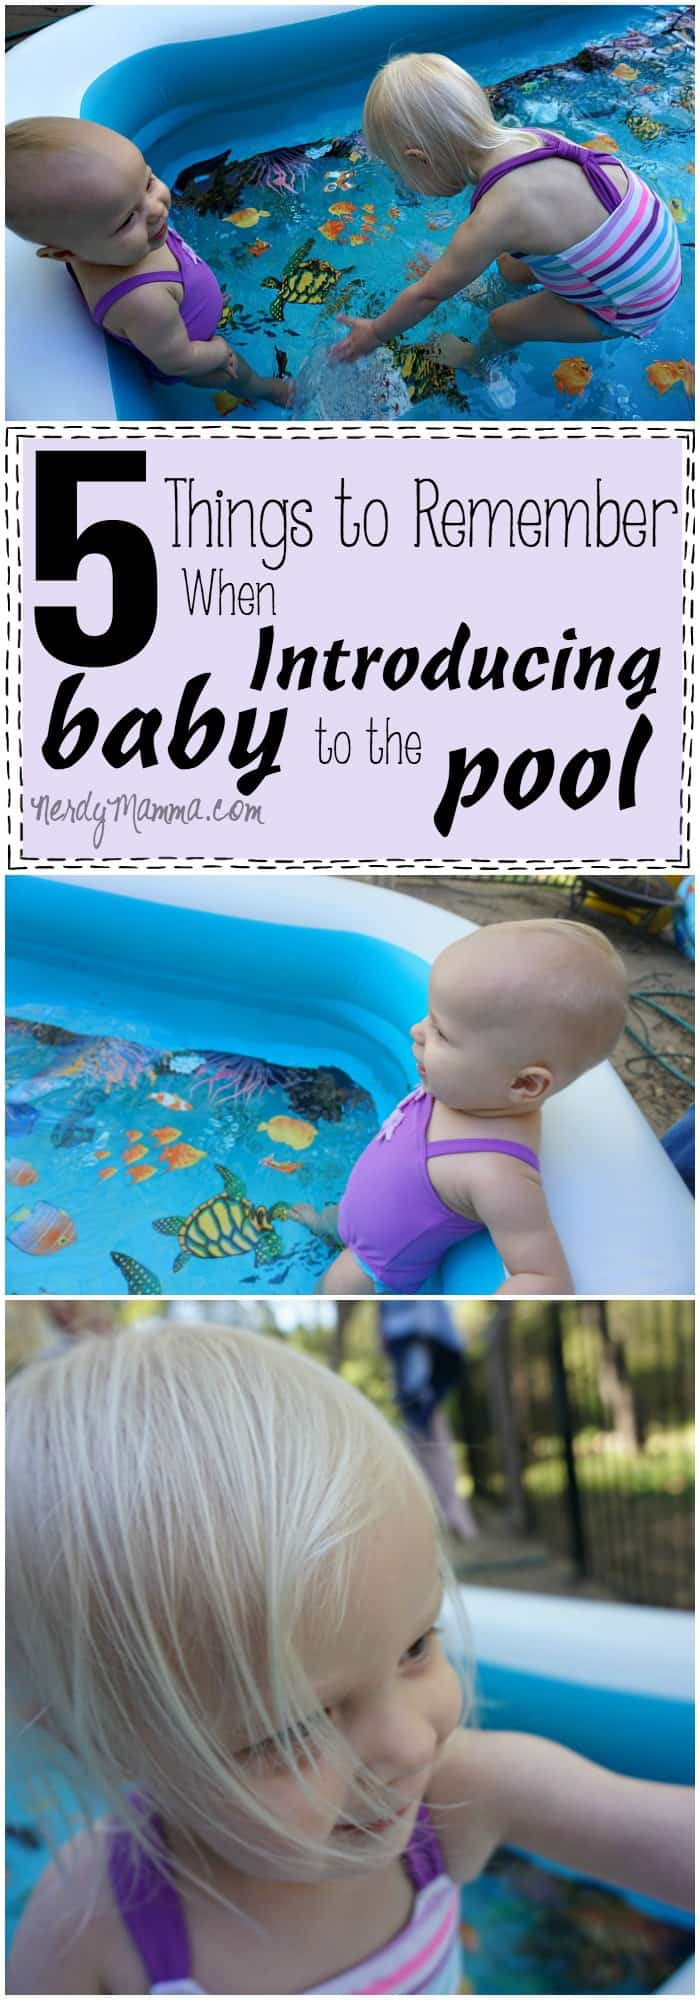 These tips for successfully introducing a baby to water are so awesome. I love it!